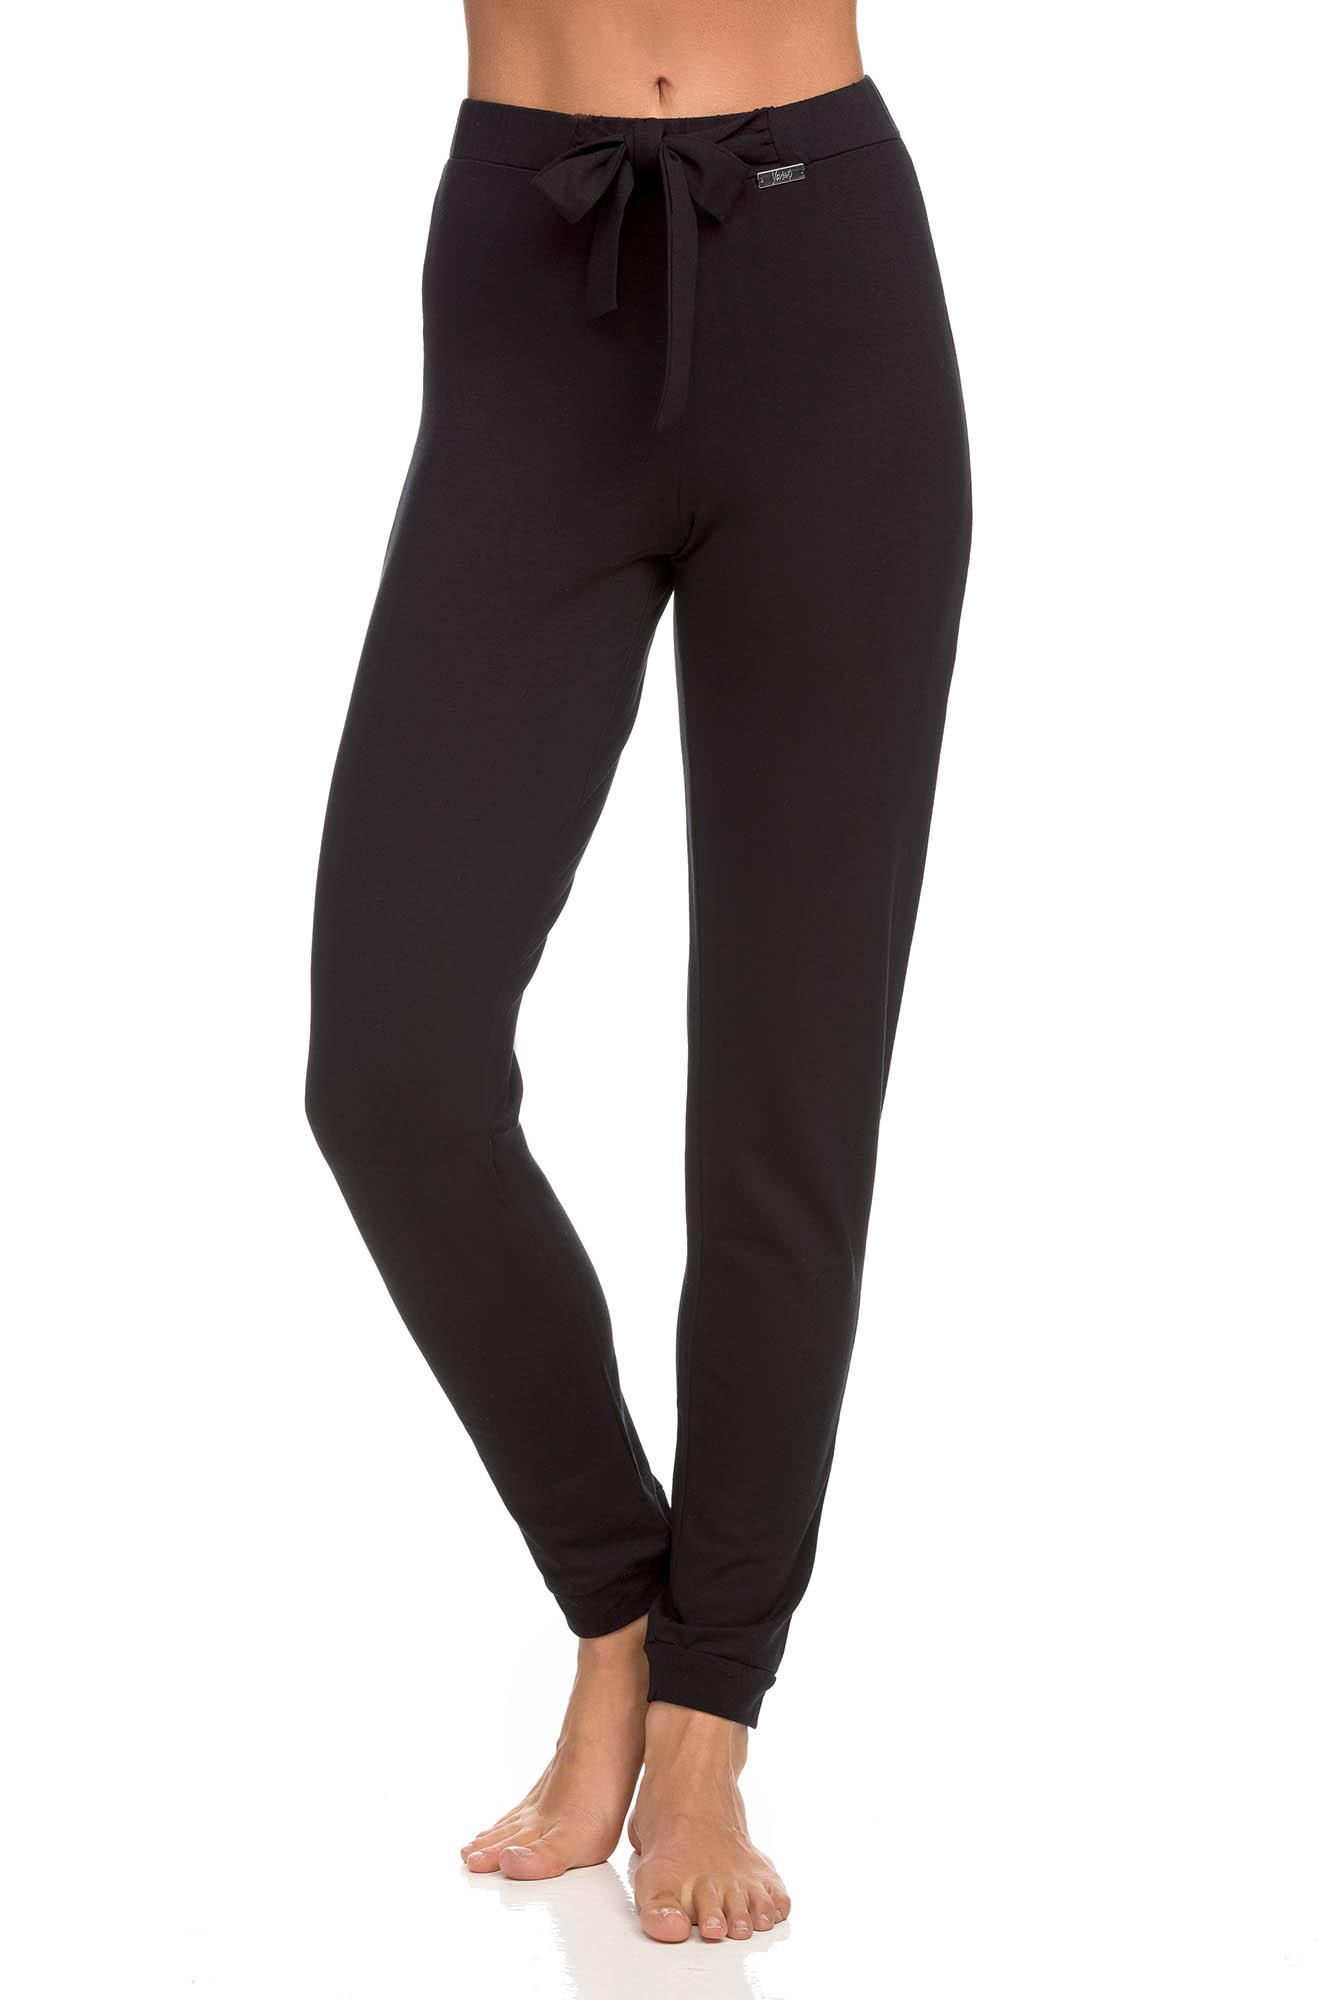 Women's Plain Pants